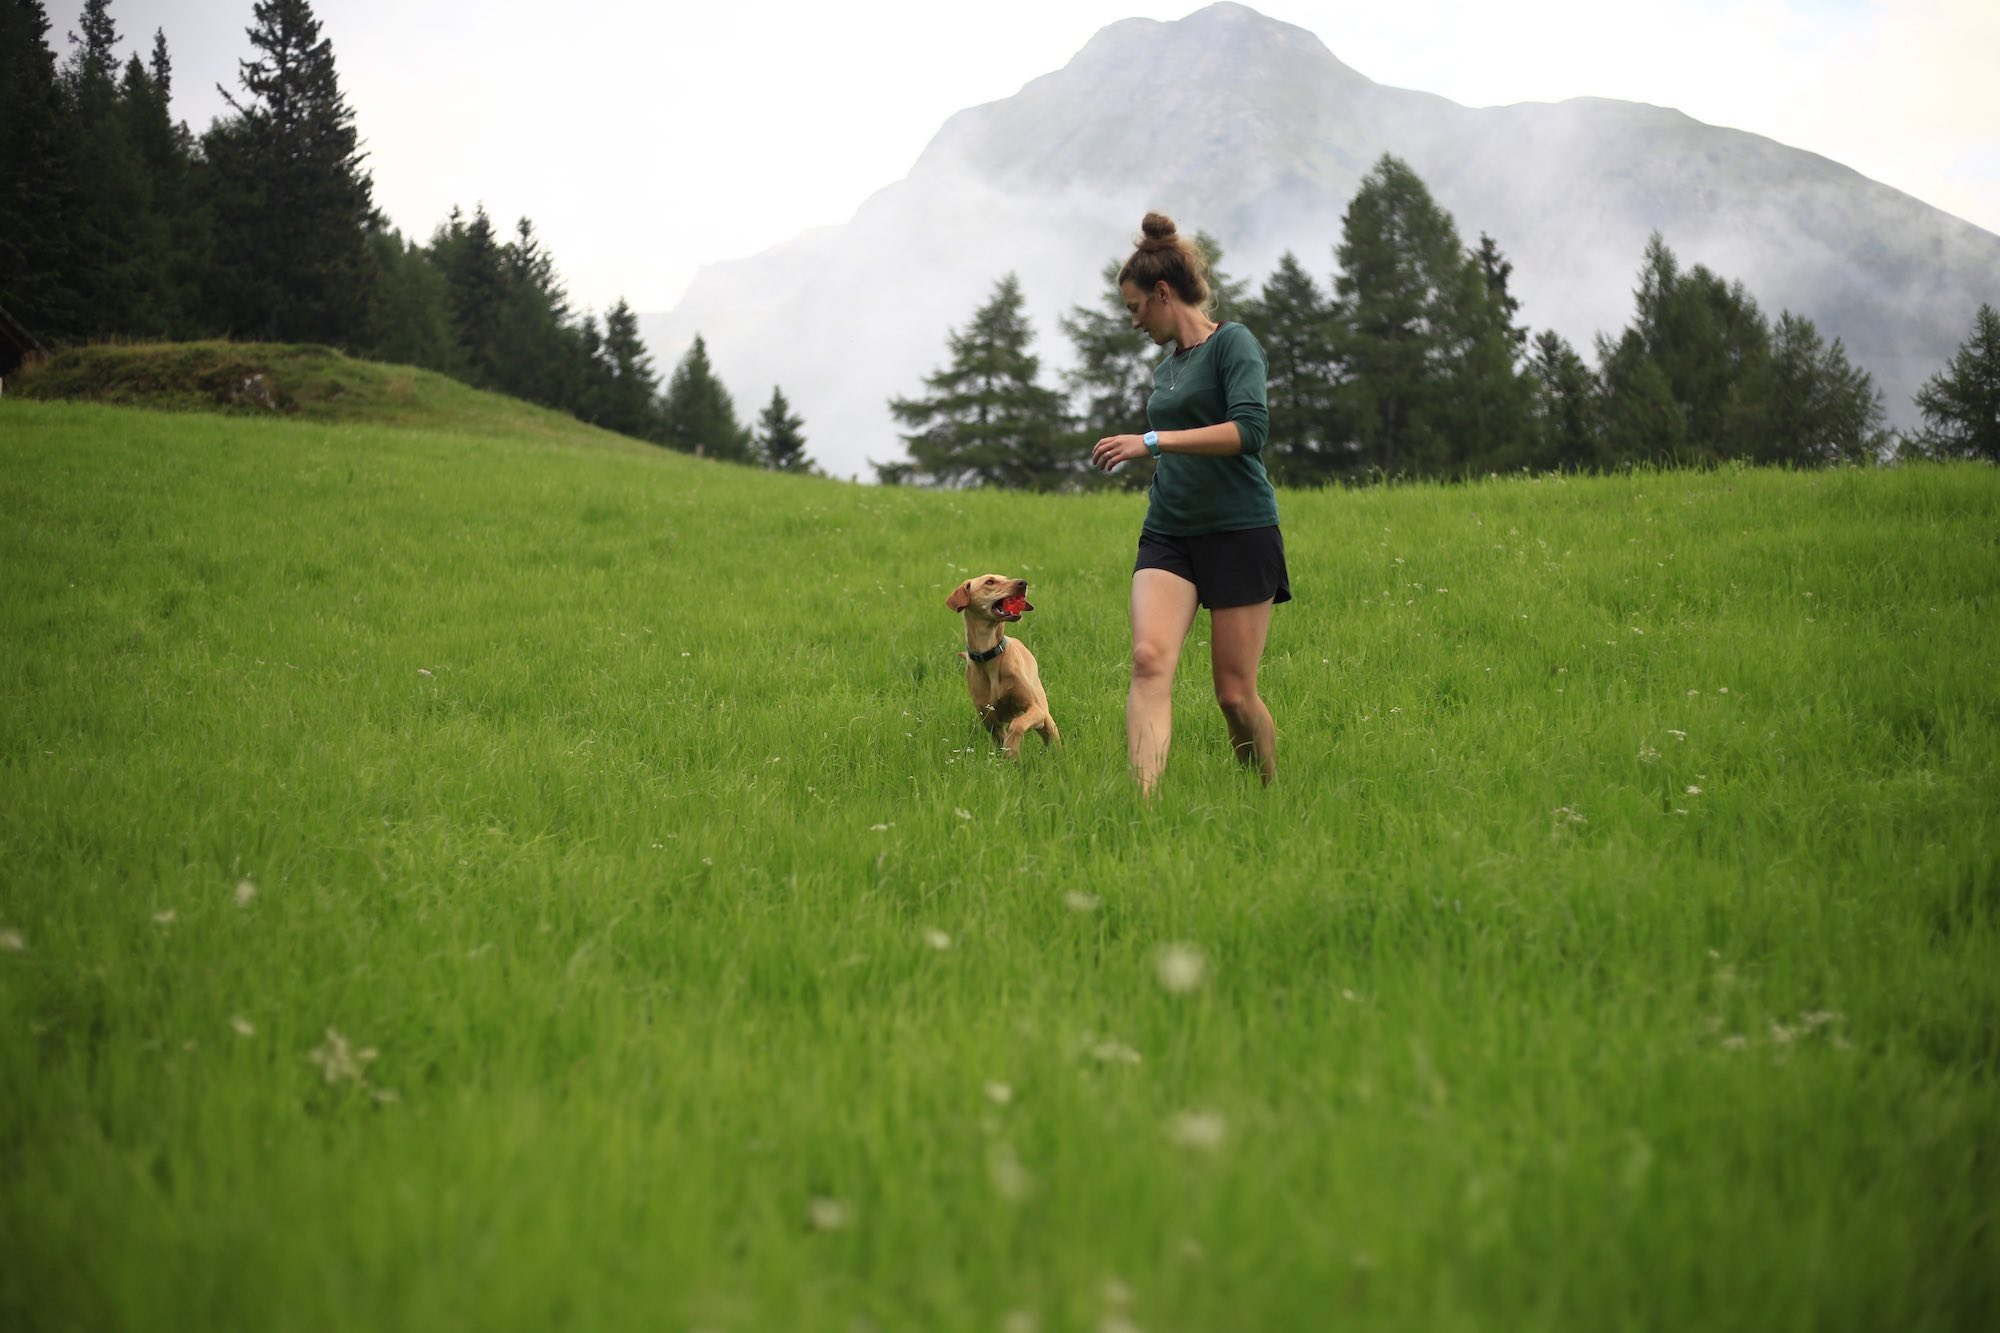 Escaping the crowds in the mountains of Austria